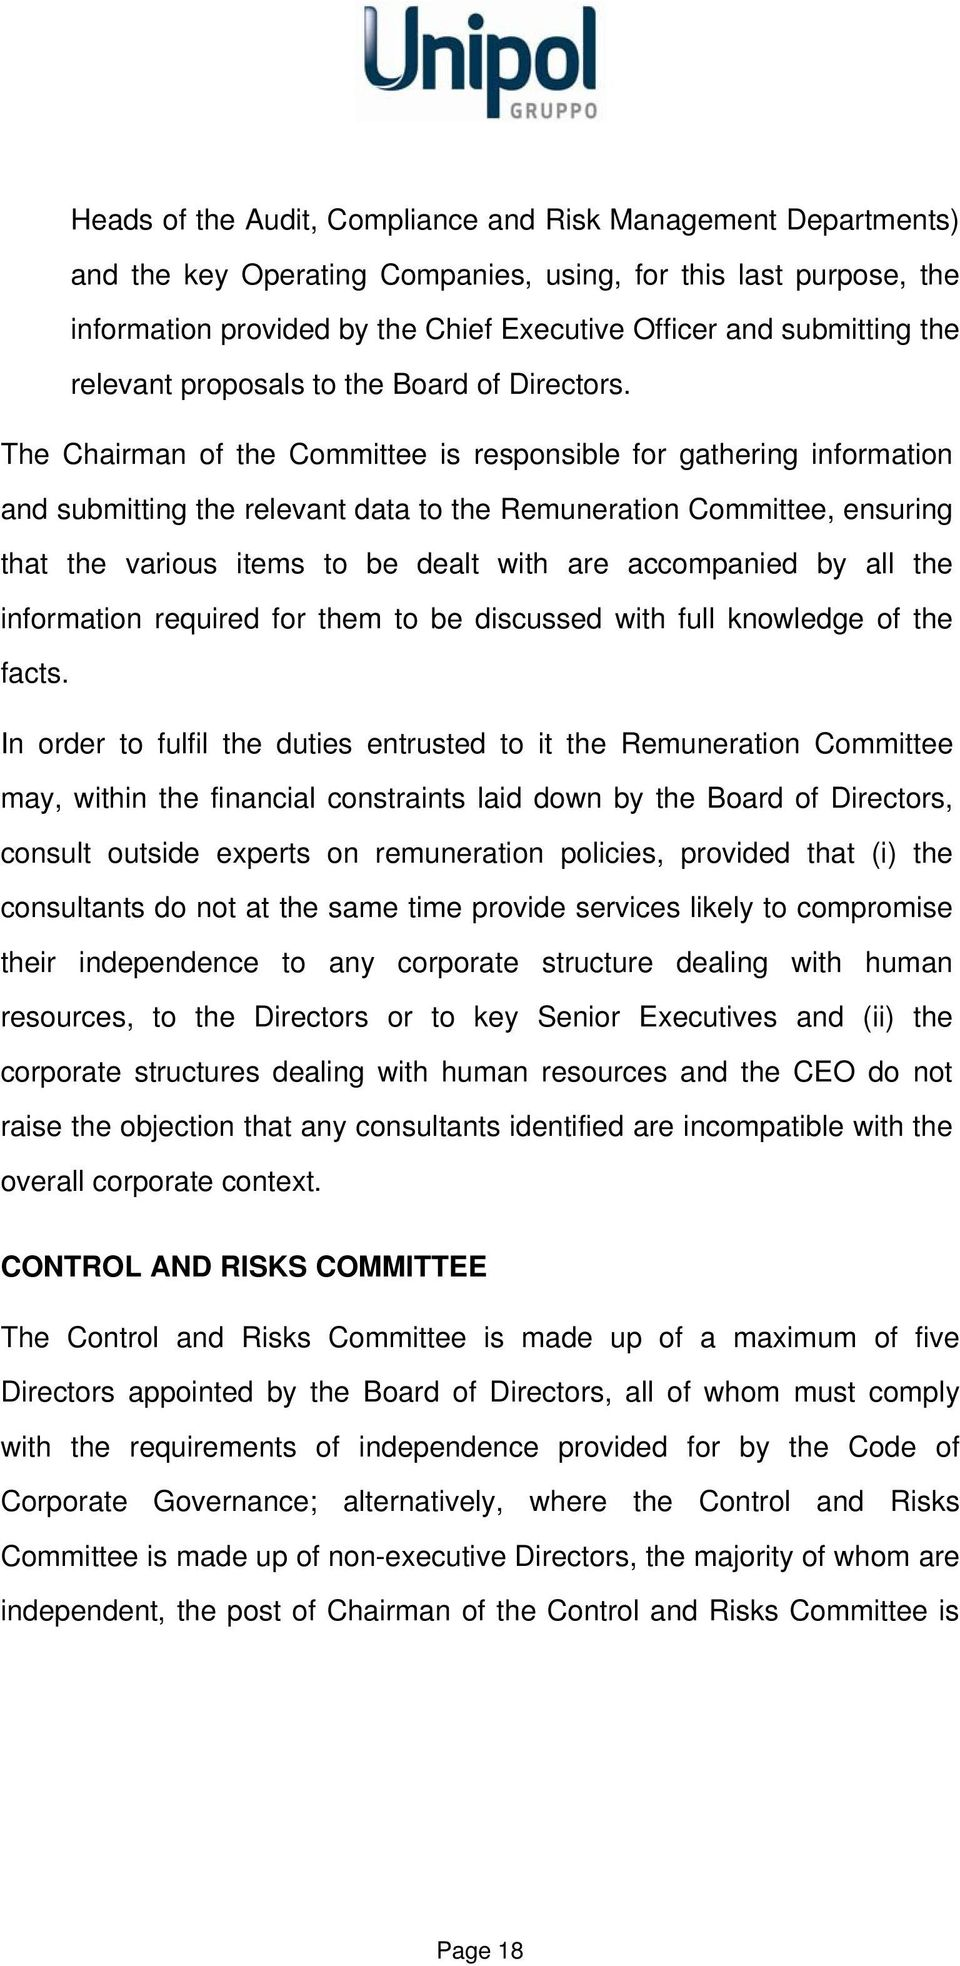 The Chairman of the Committee is responsible for gathering information and submitting the relevant data to the Remuneration Committee, ensuring that the various items to be dealt with are accompanied